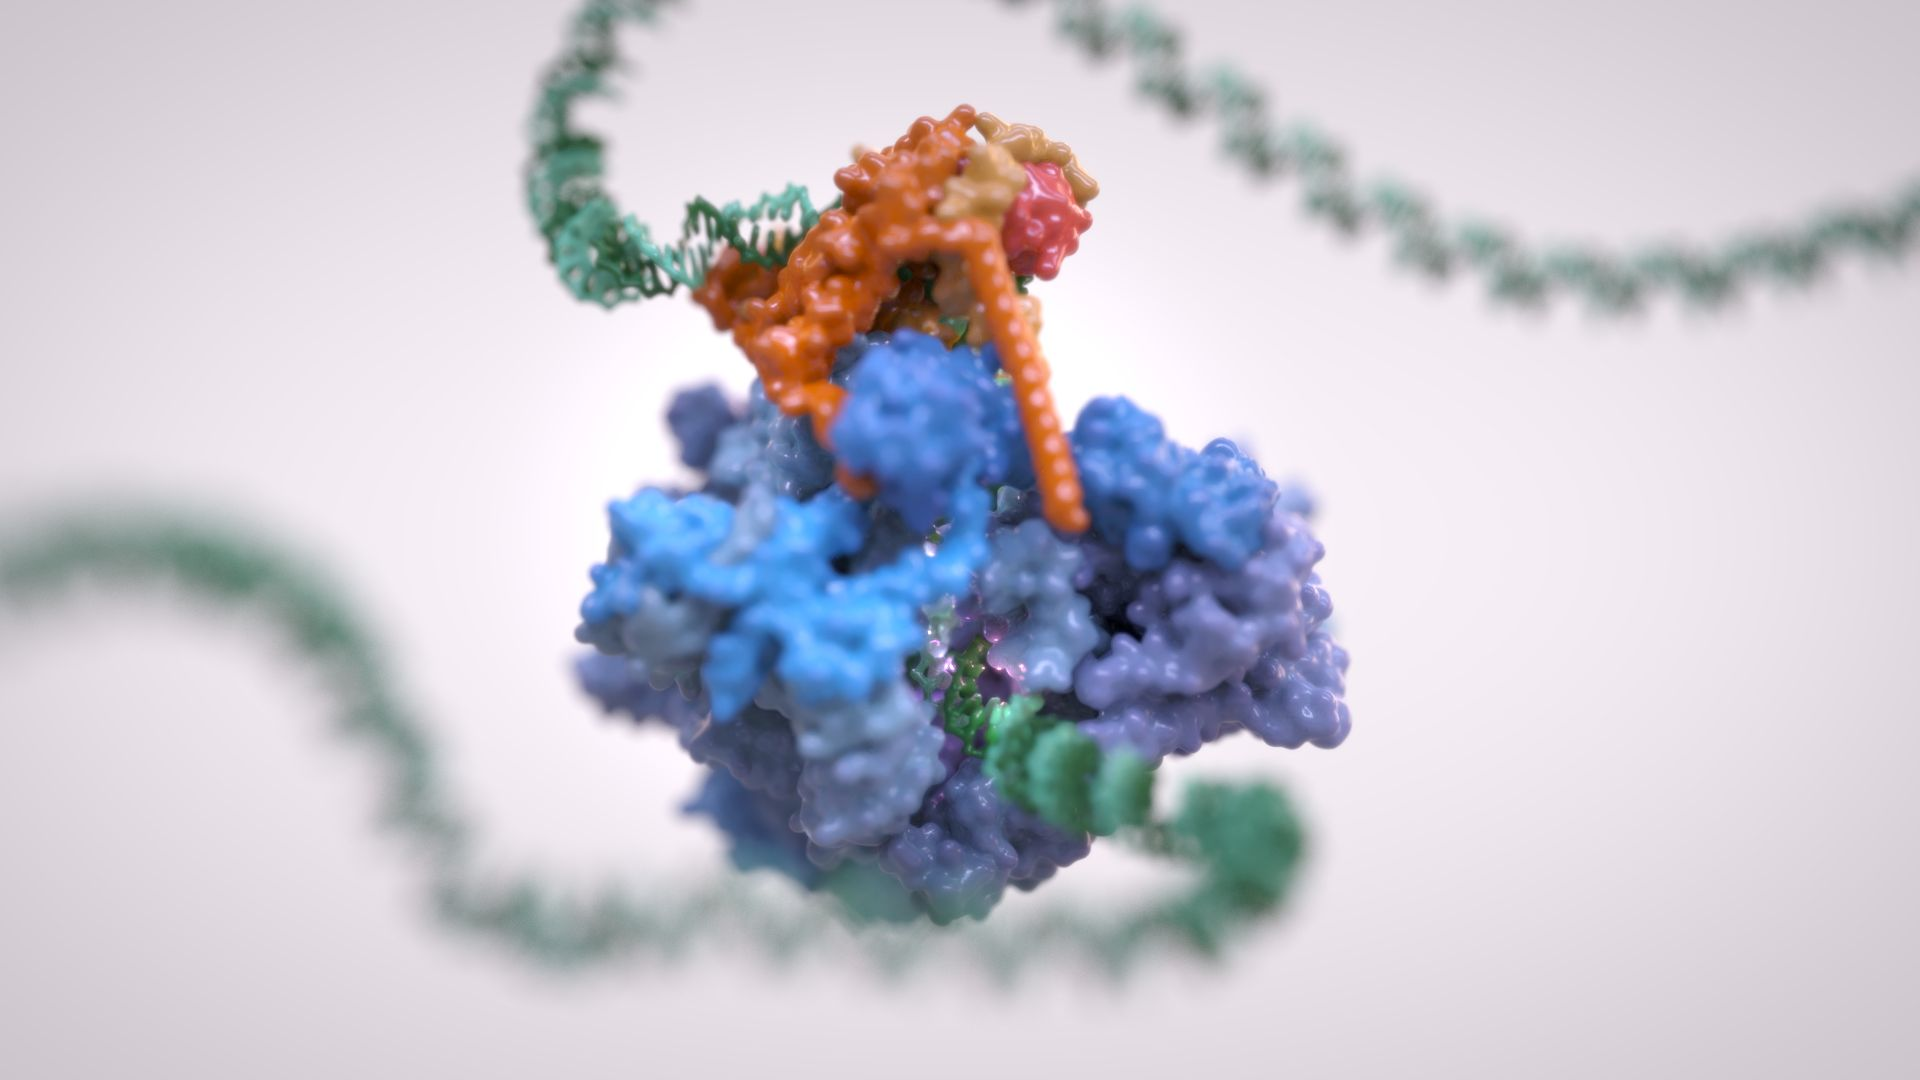 For The First Time, Scientists Have Watched DNA Being 'Transcribed' In